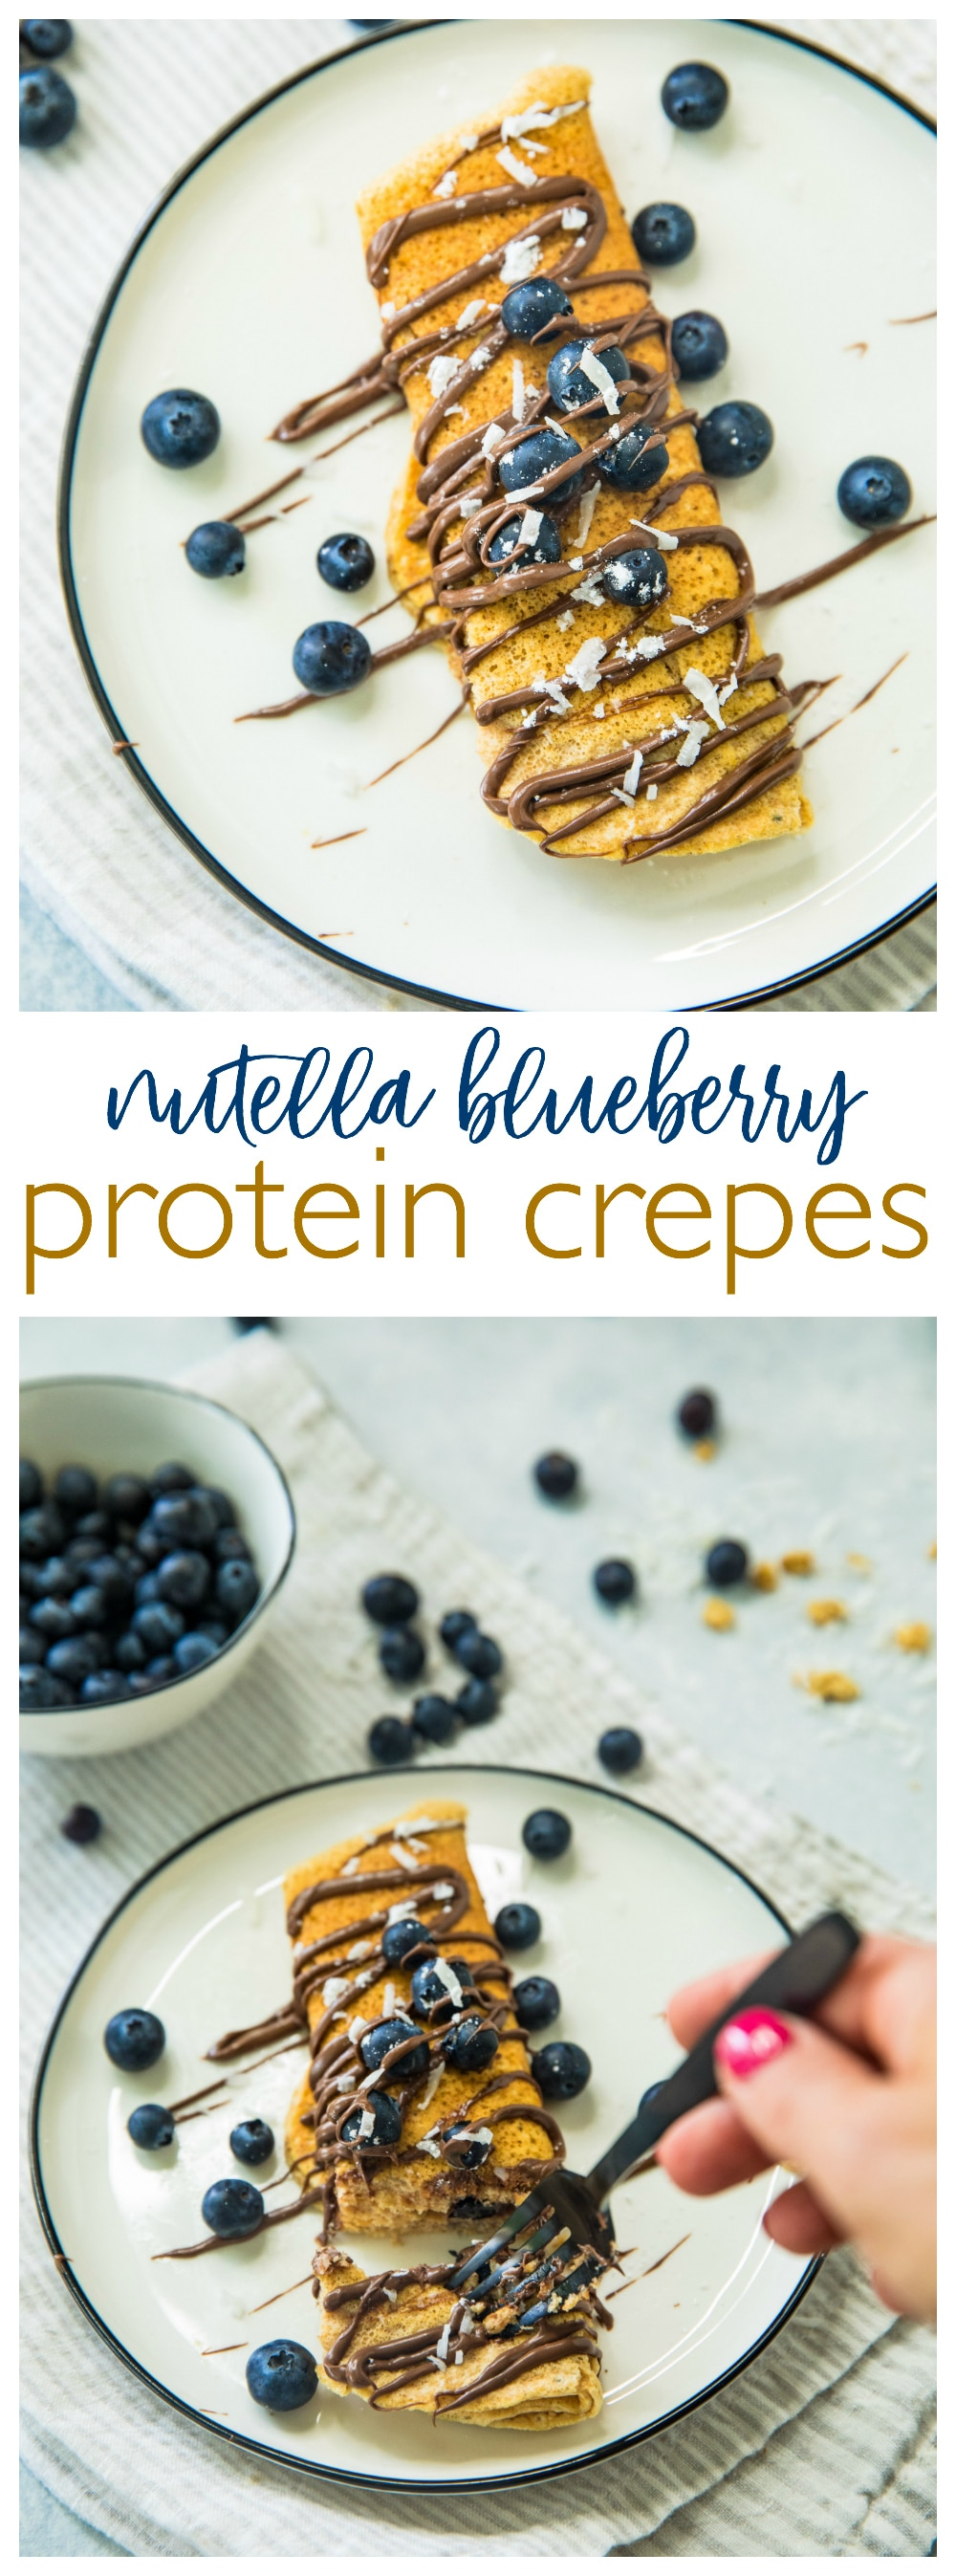 These Nutella Blueberry Protein Crepes are a hit for any breakfast meal. They take just minutes to prepare and are filled with fresh blueberries and yummy Nutella making them irresistible.